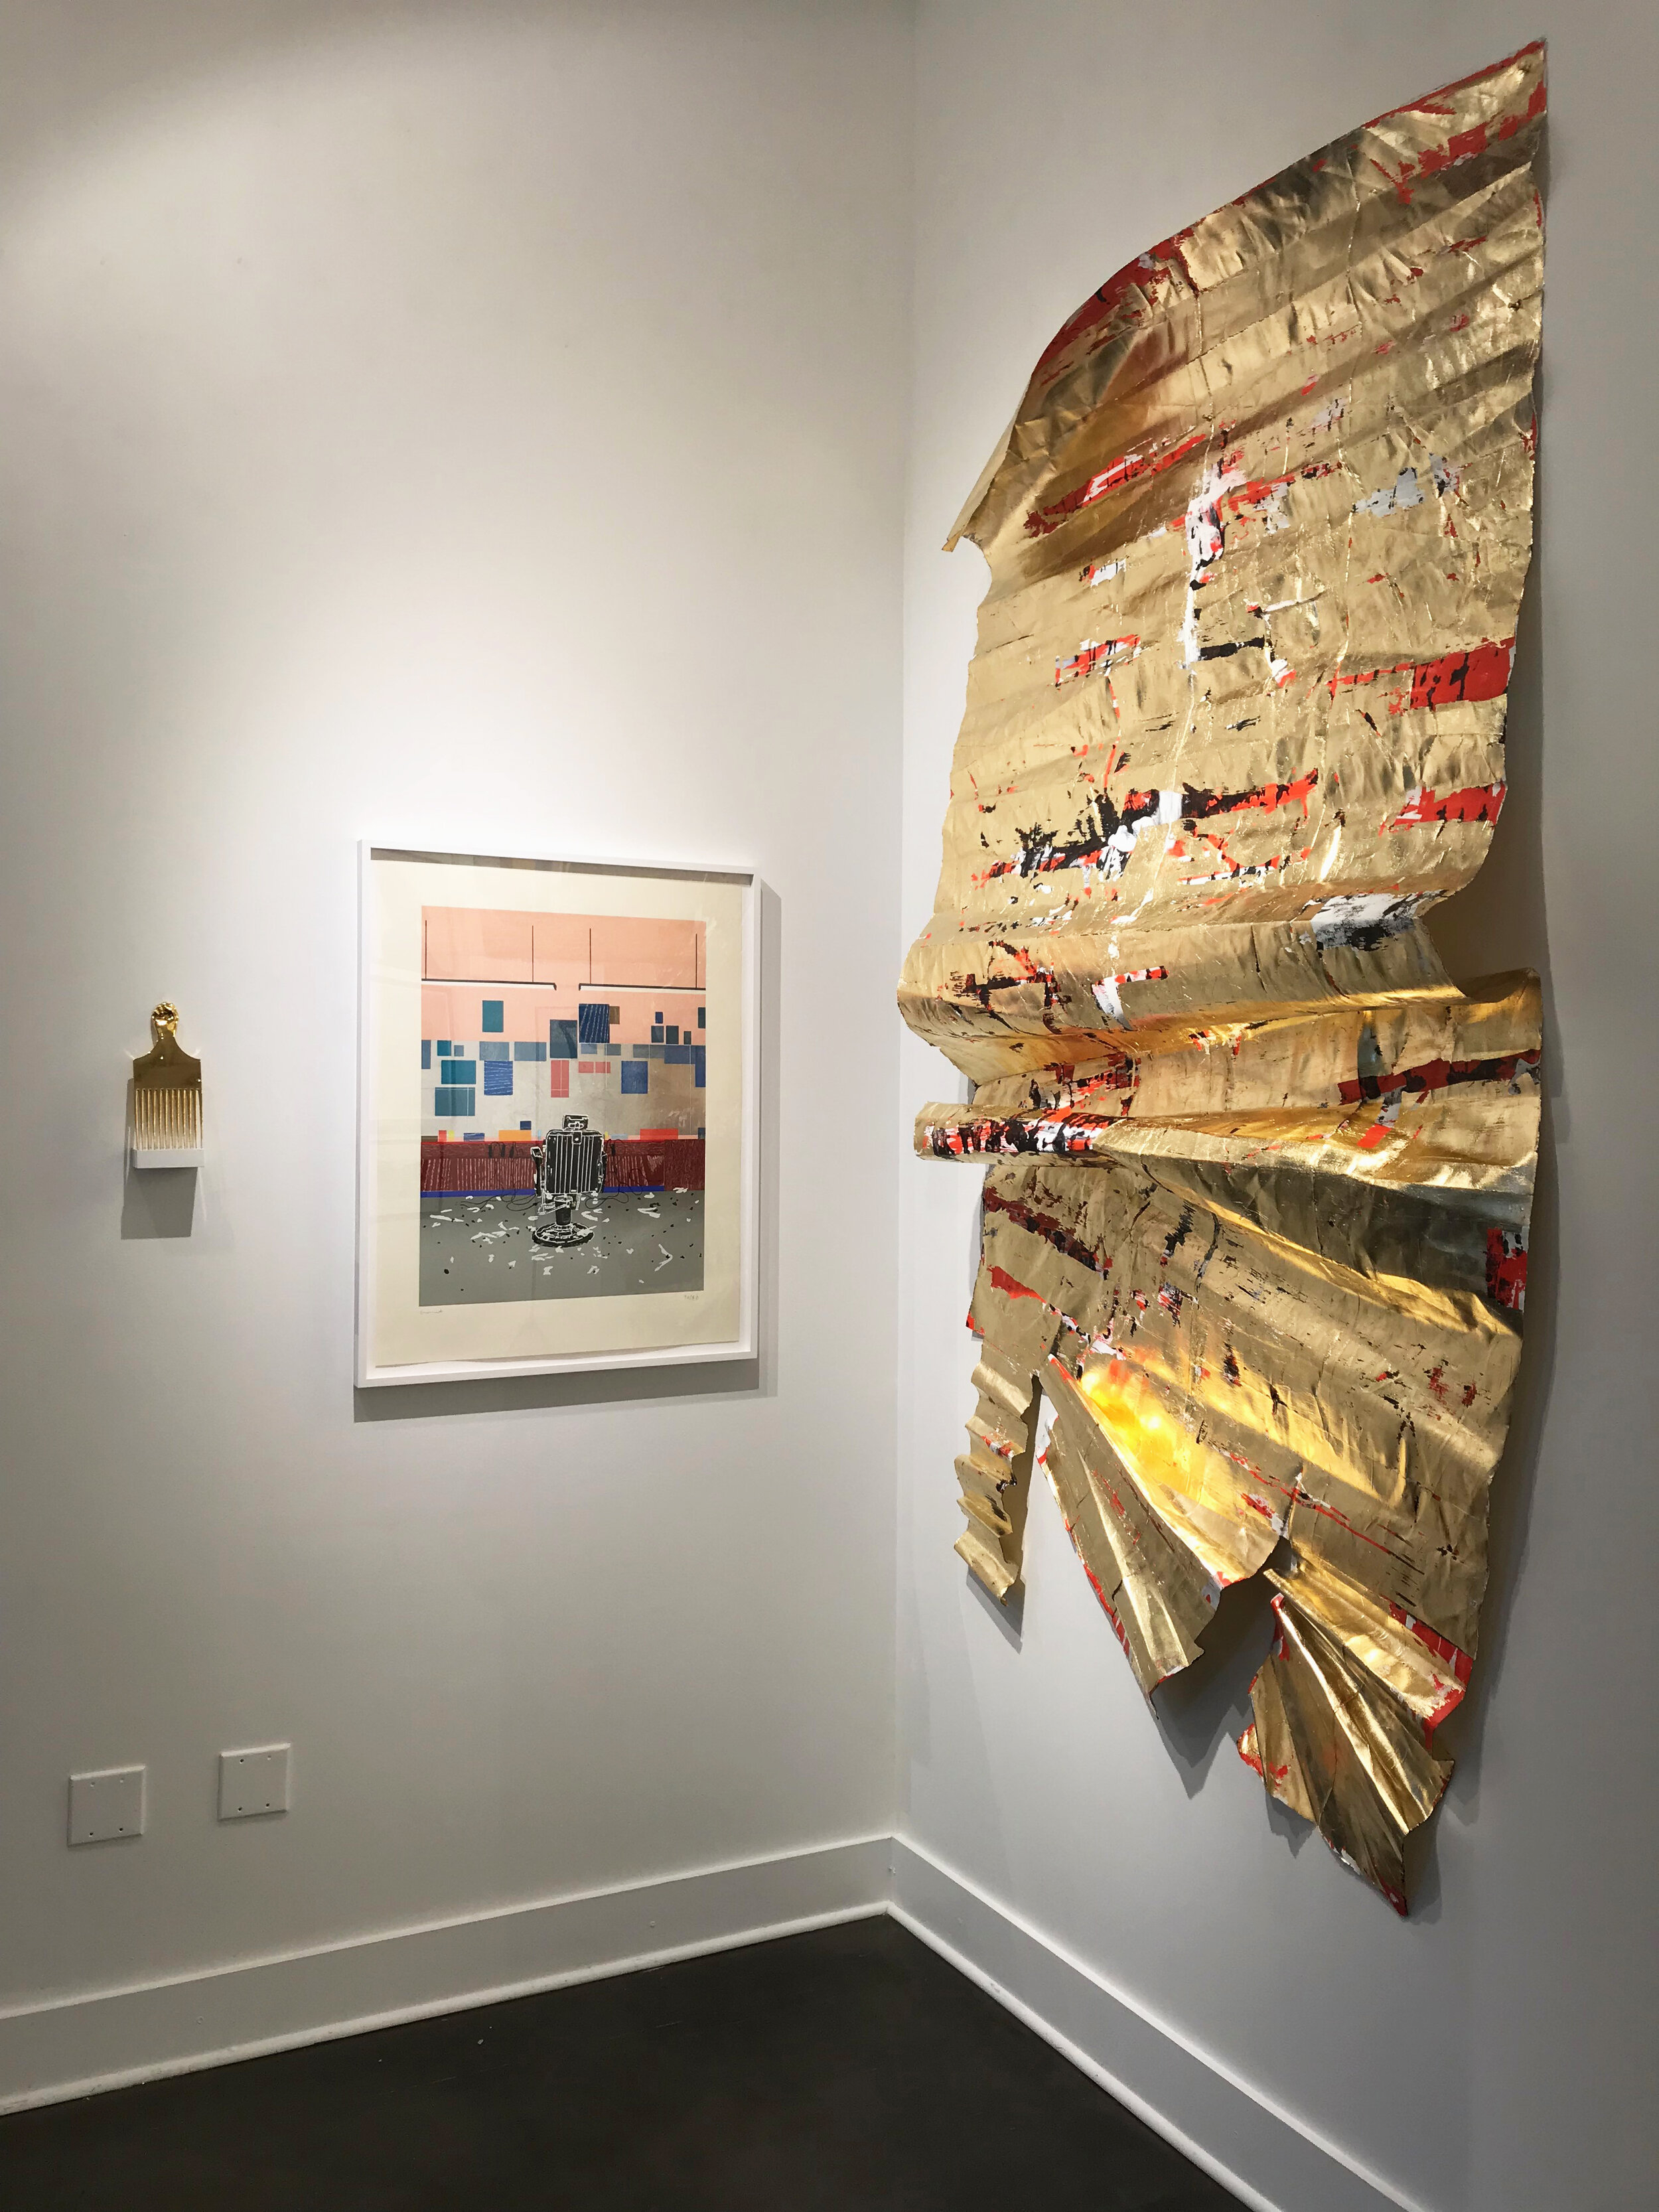 Damaged Emergency Blanket (for O. B.),  Installation View,  BLACK BLOODED,  New Gallery of Modern Art, Charlotte, NC, 2018, 50 x 100 inches, acrylic, composition gold leaf and metallic wax on distressed paper